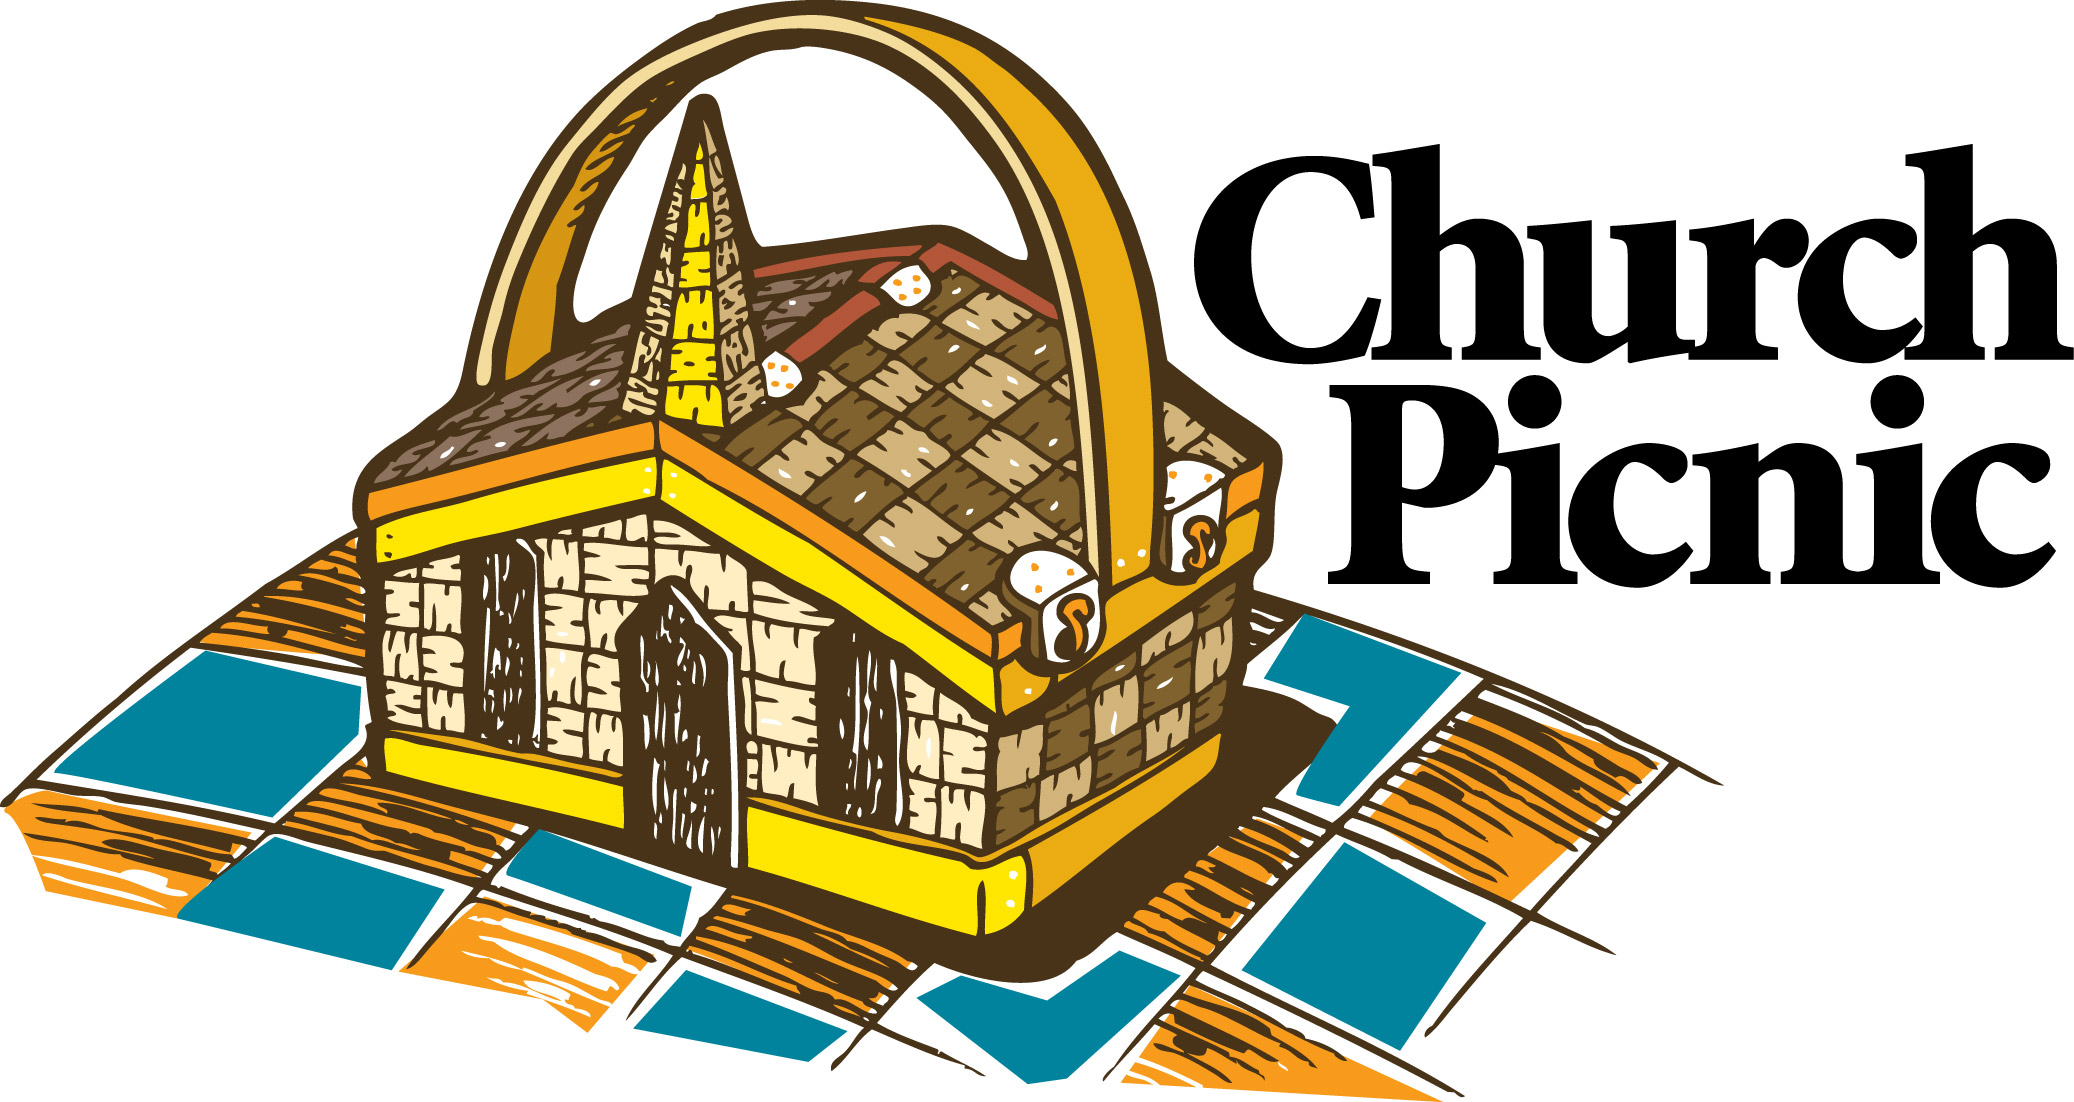 All-church picnic clipart picture free Best Church Picnic Clip Art #20485 - Clipartion.com picture free